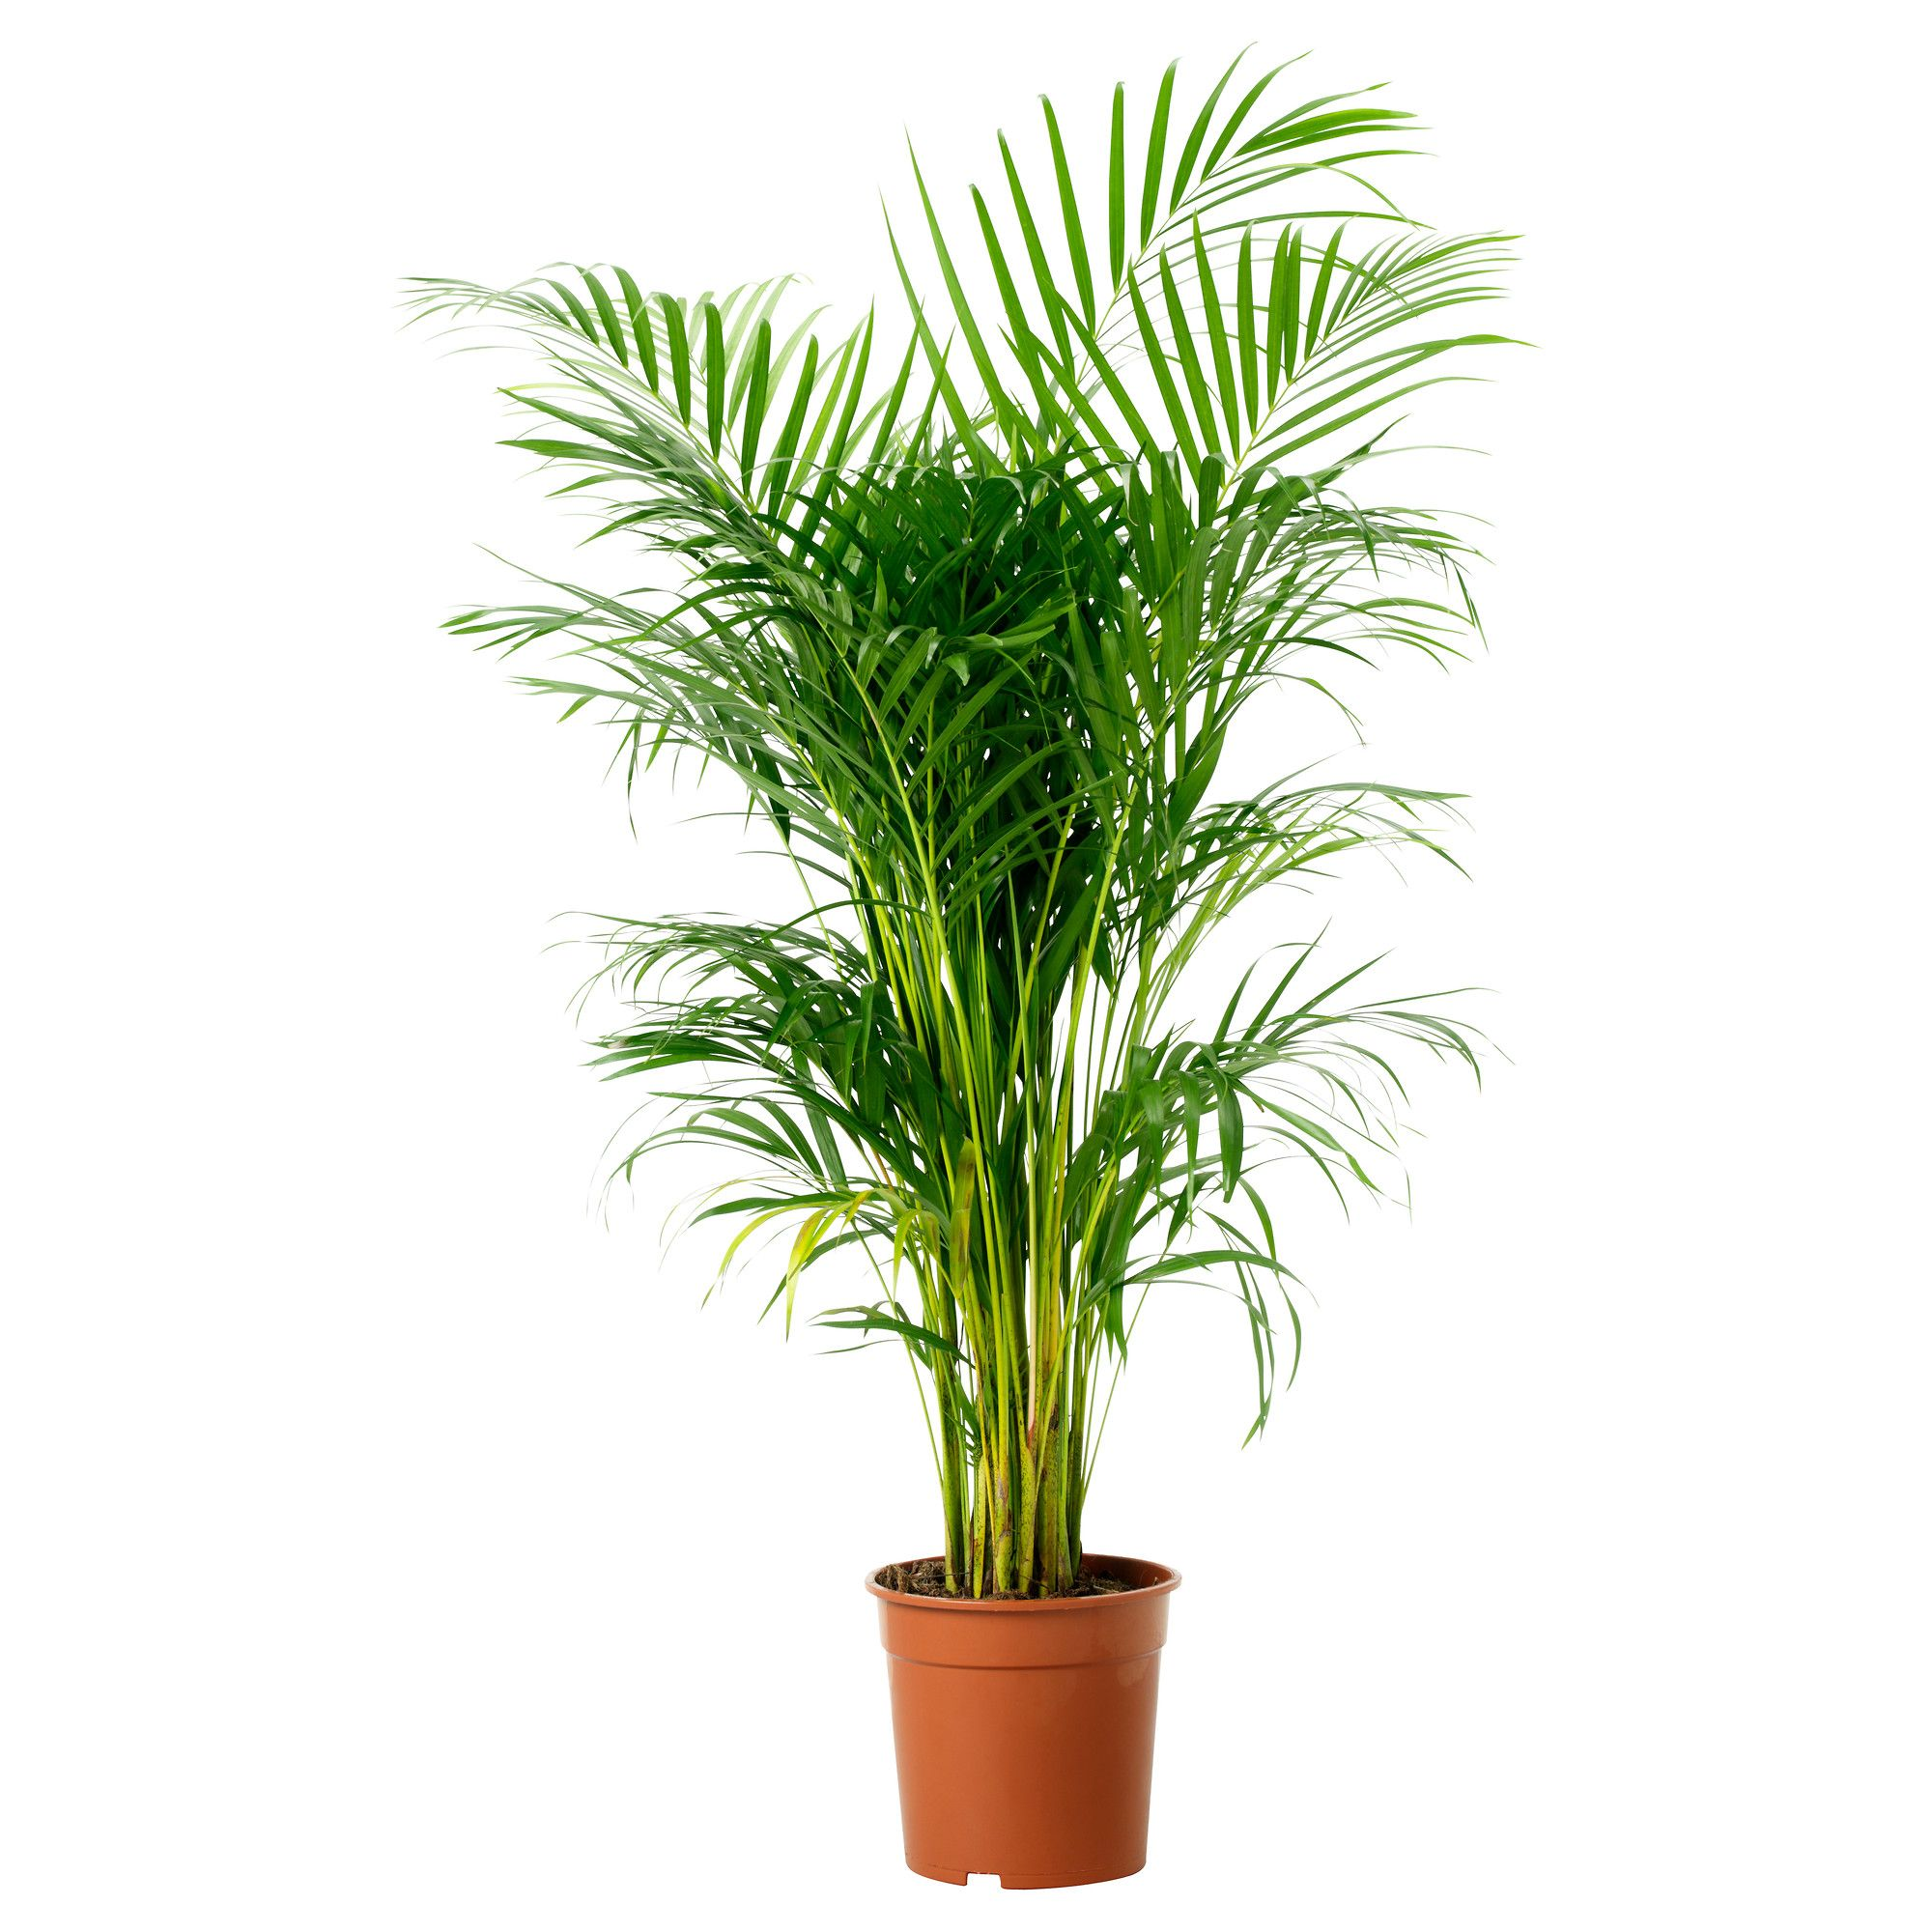 Ikea chrysalidocarpus lutescens plante en pot for Plantes decoratives exterieur